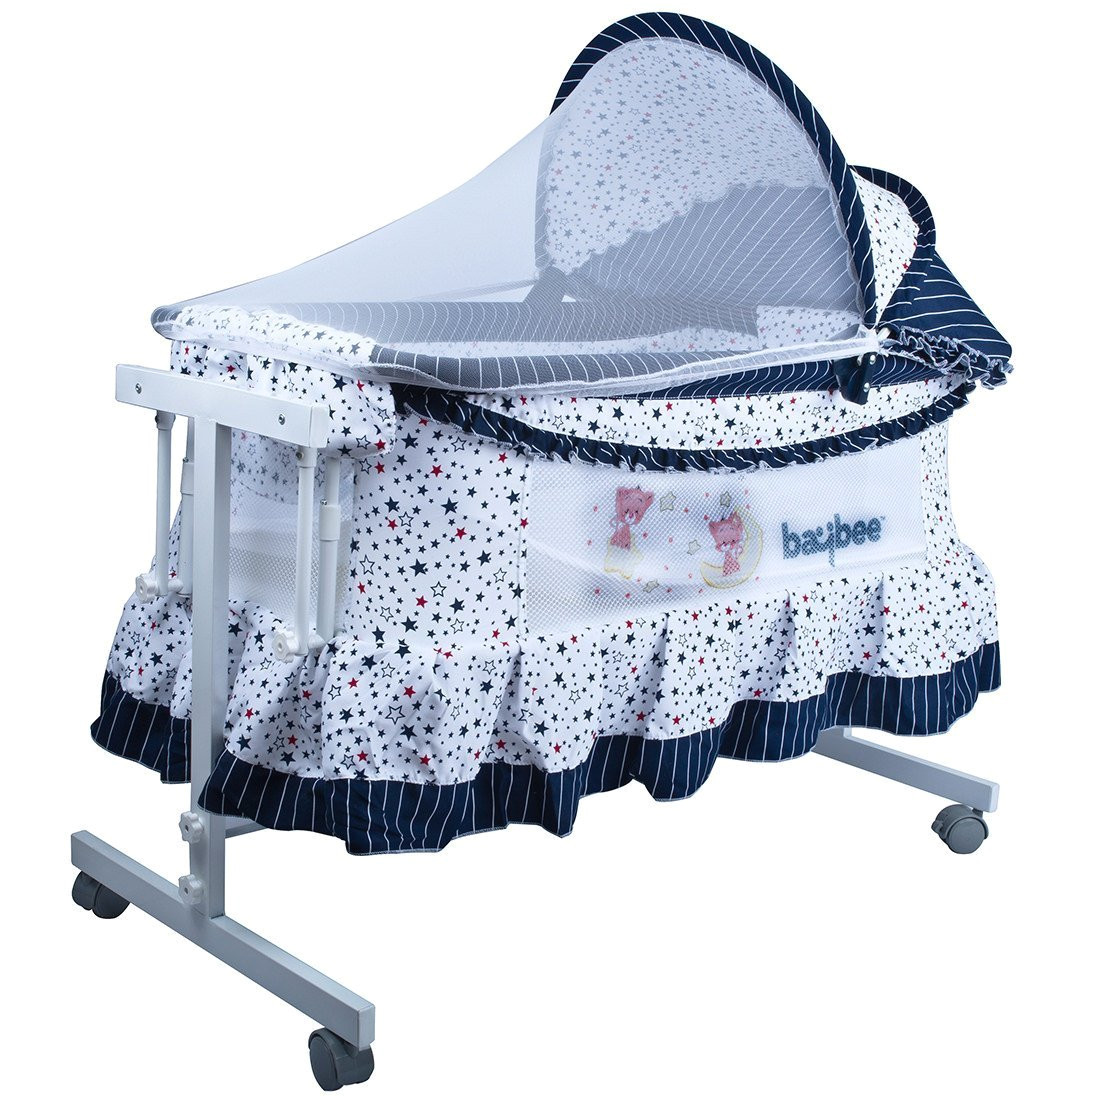 buy goodluck baybee new born baby cradle for kids baby bed crib with swing function stroller cradle with mosquito net canopy for babies up to 18